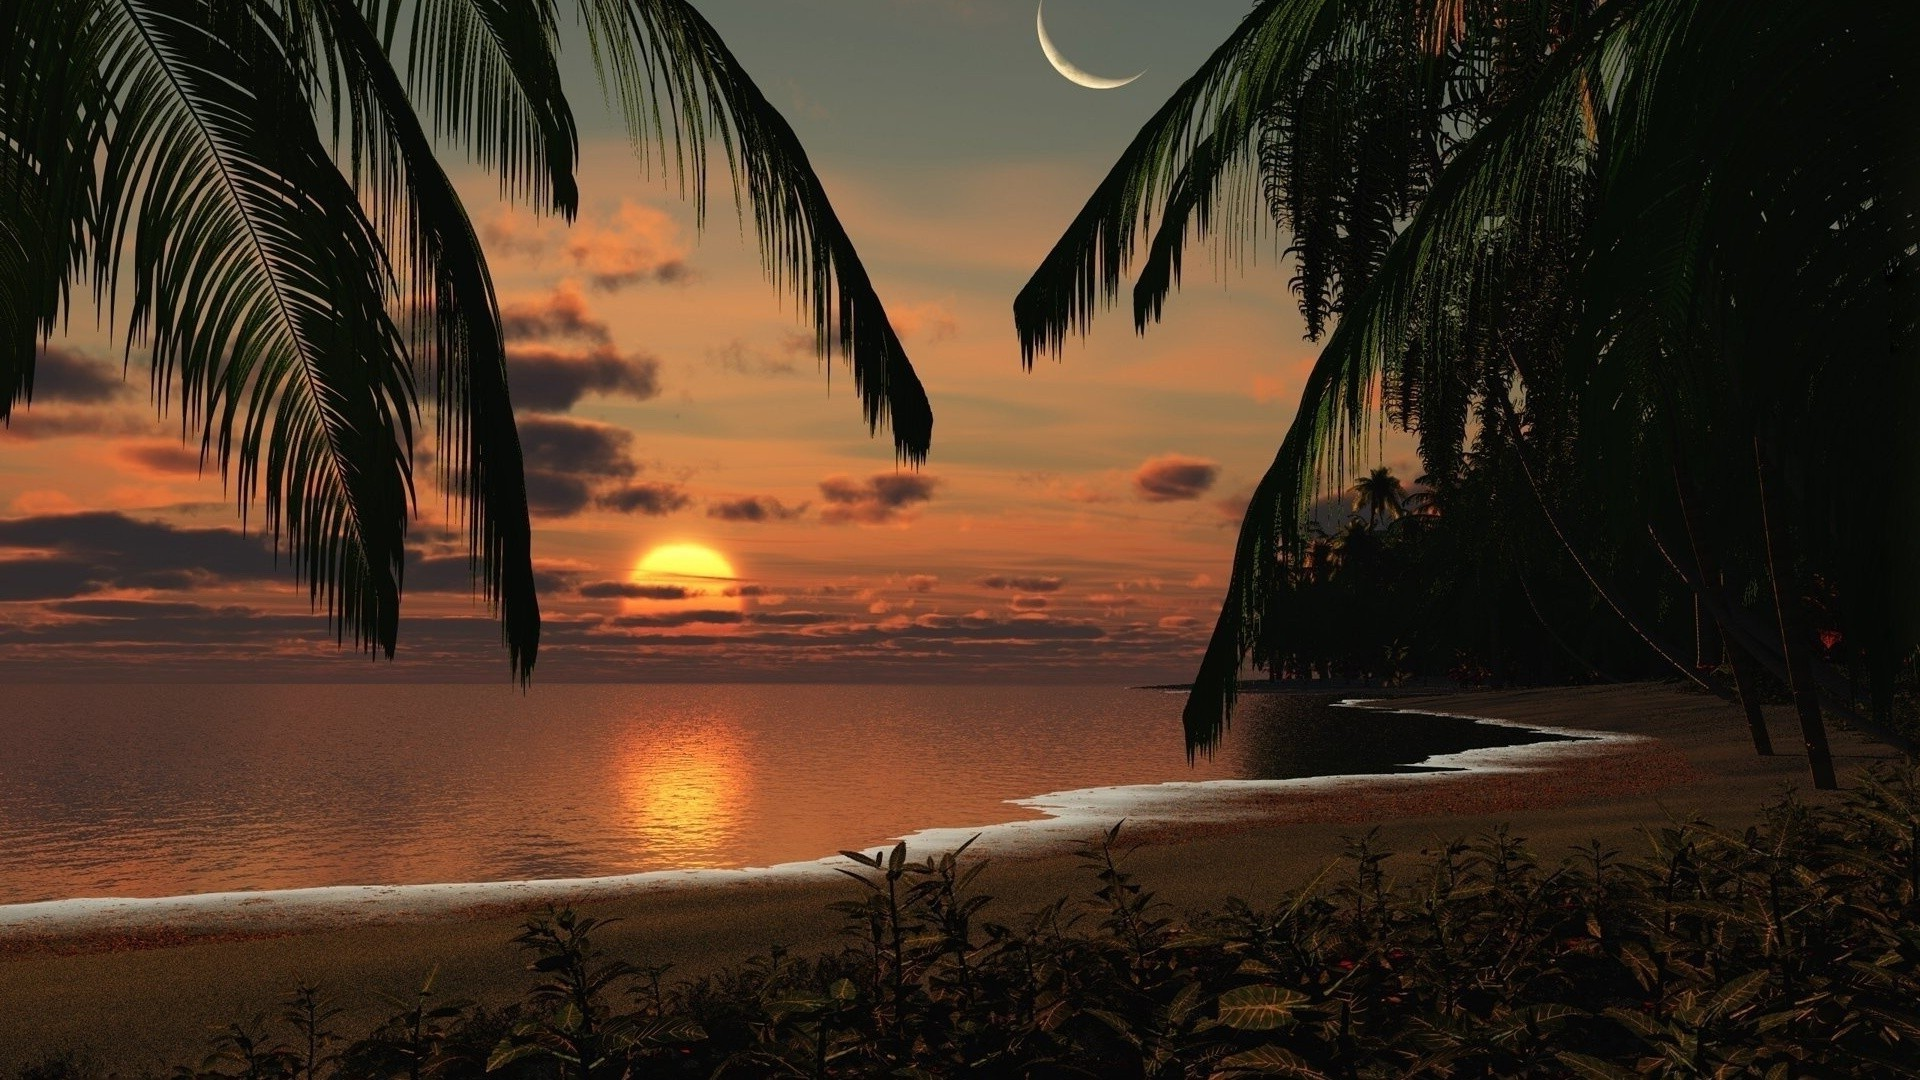 Sunset on a tropical island